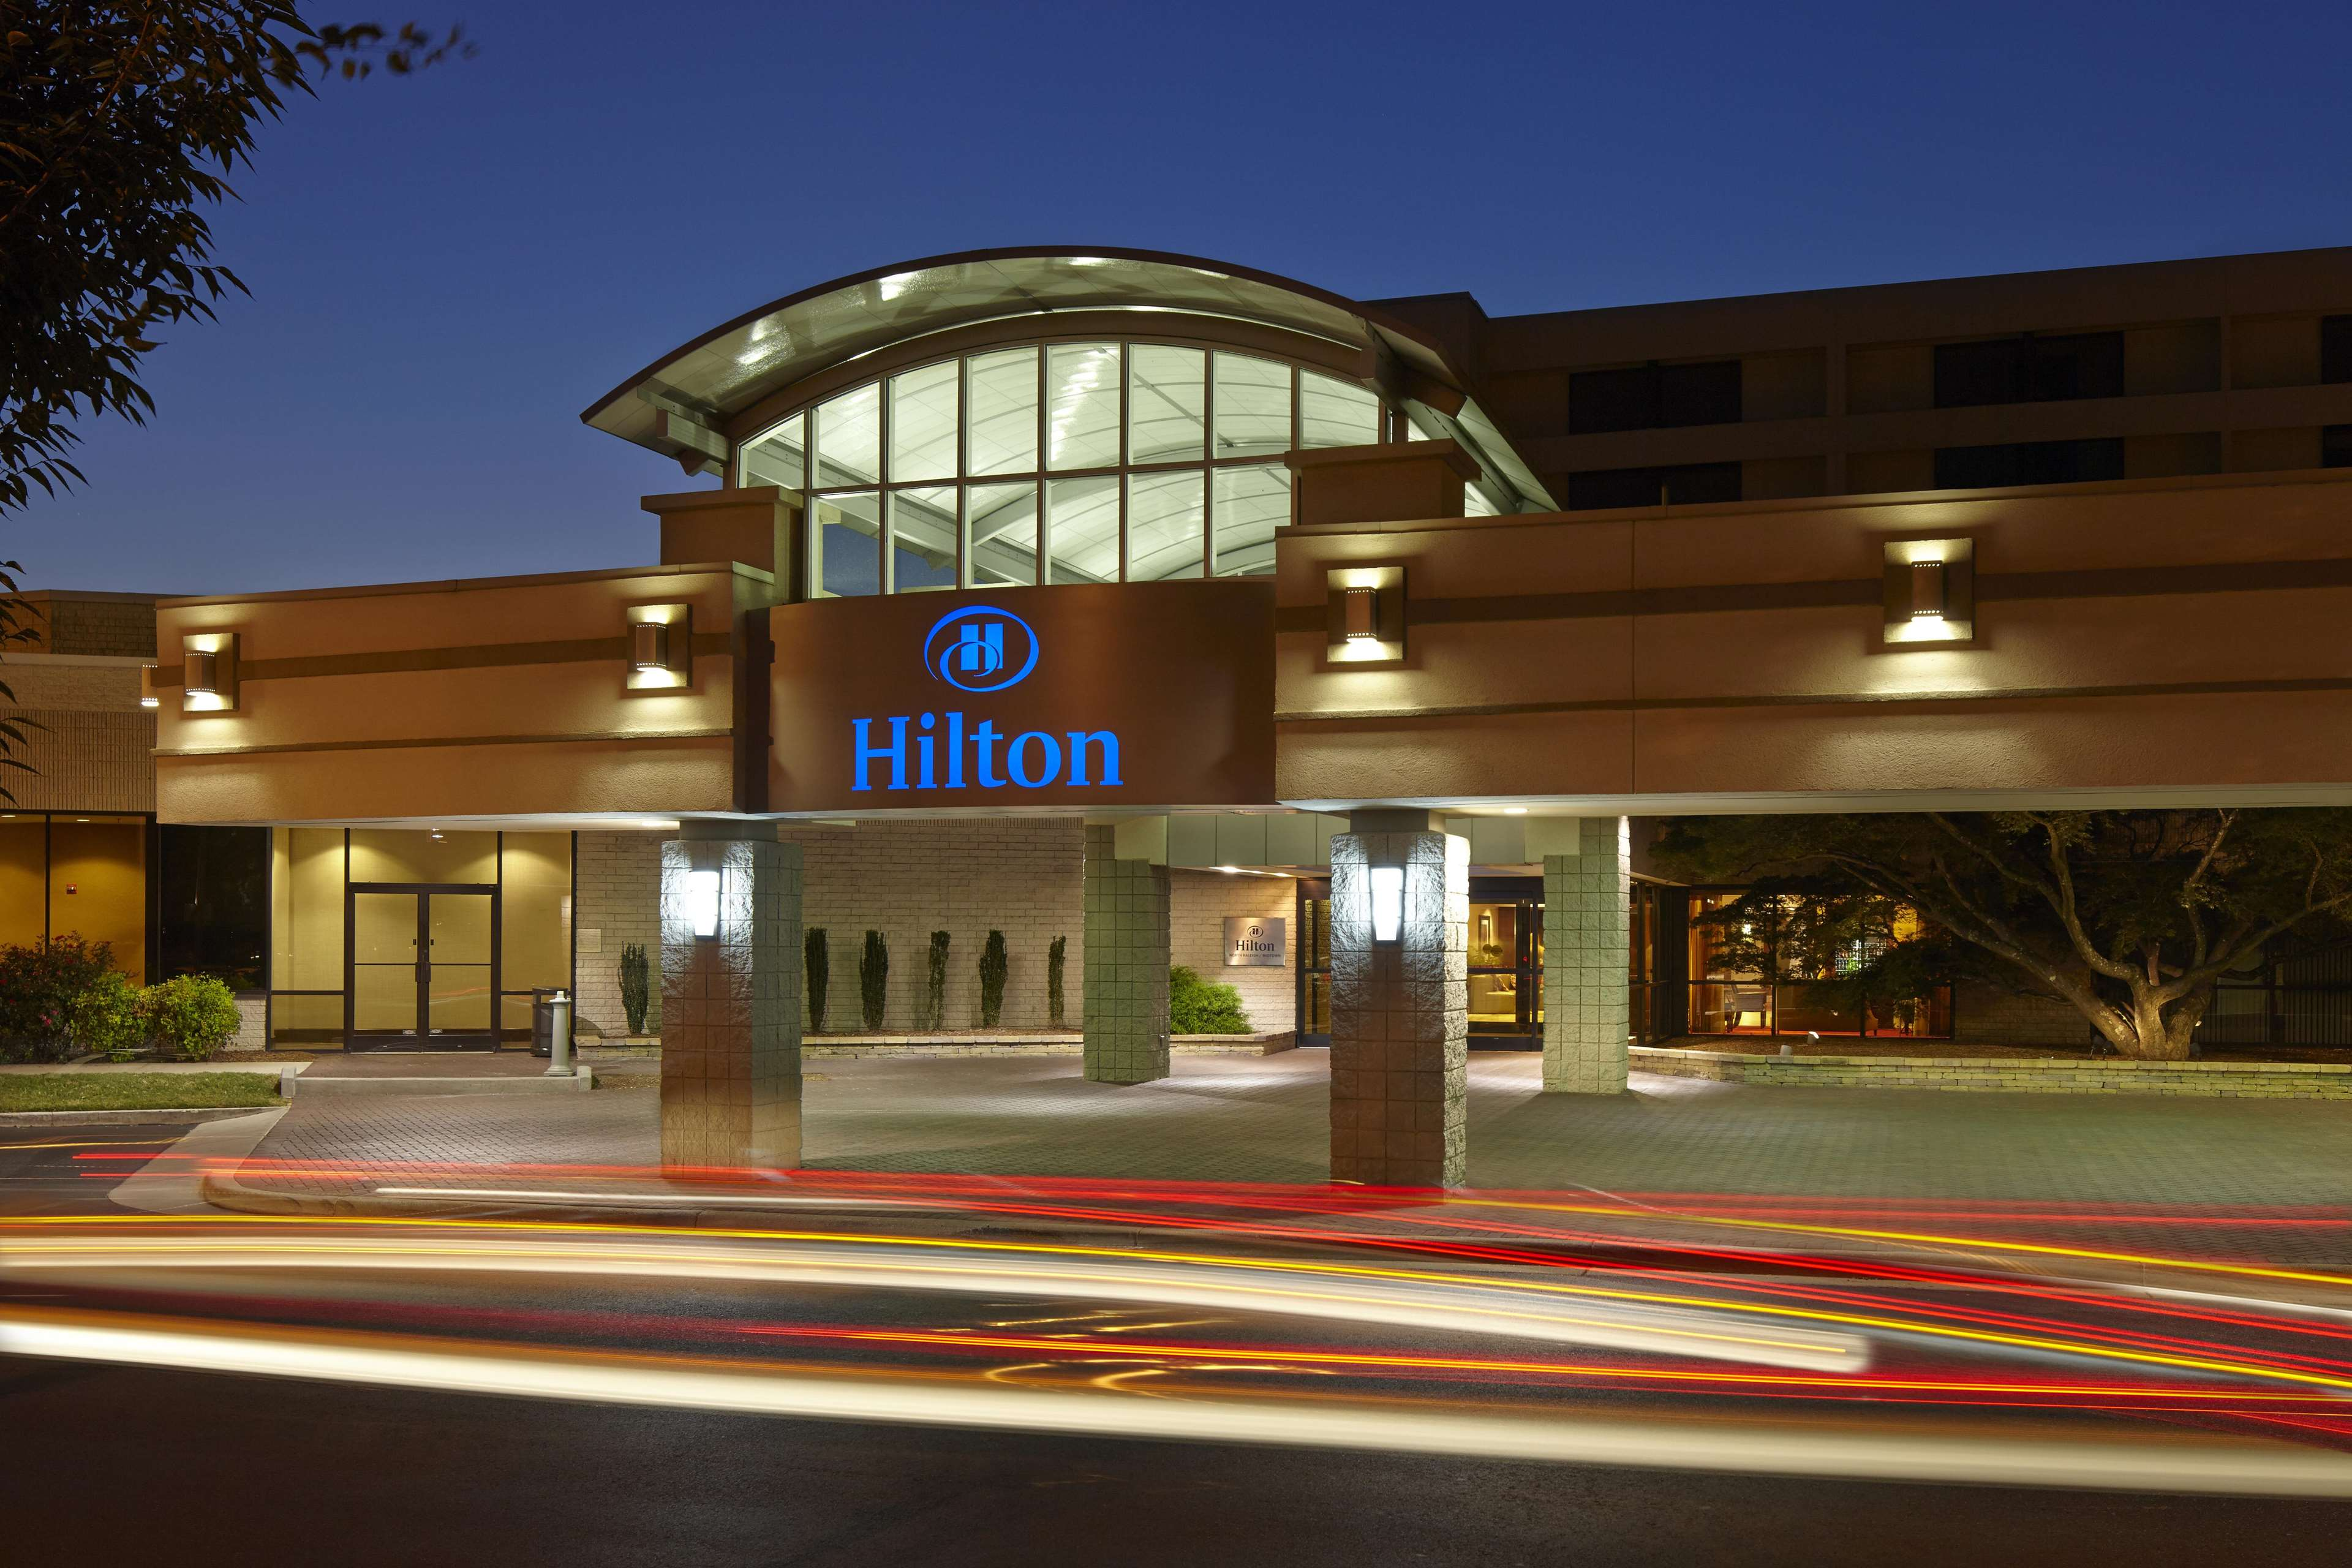 Hilton Raleigh North Hills image 0